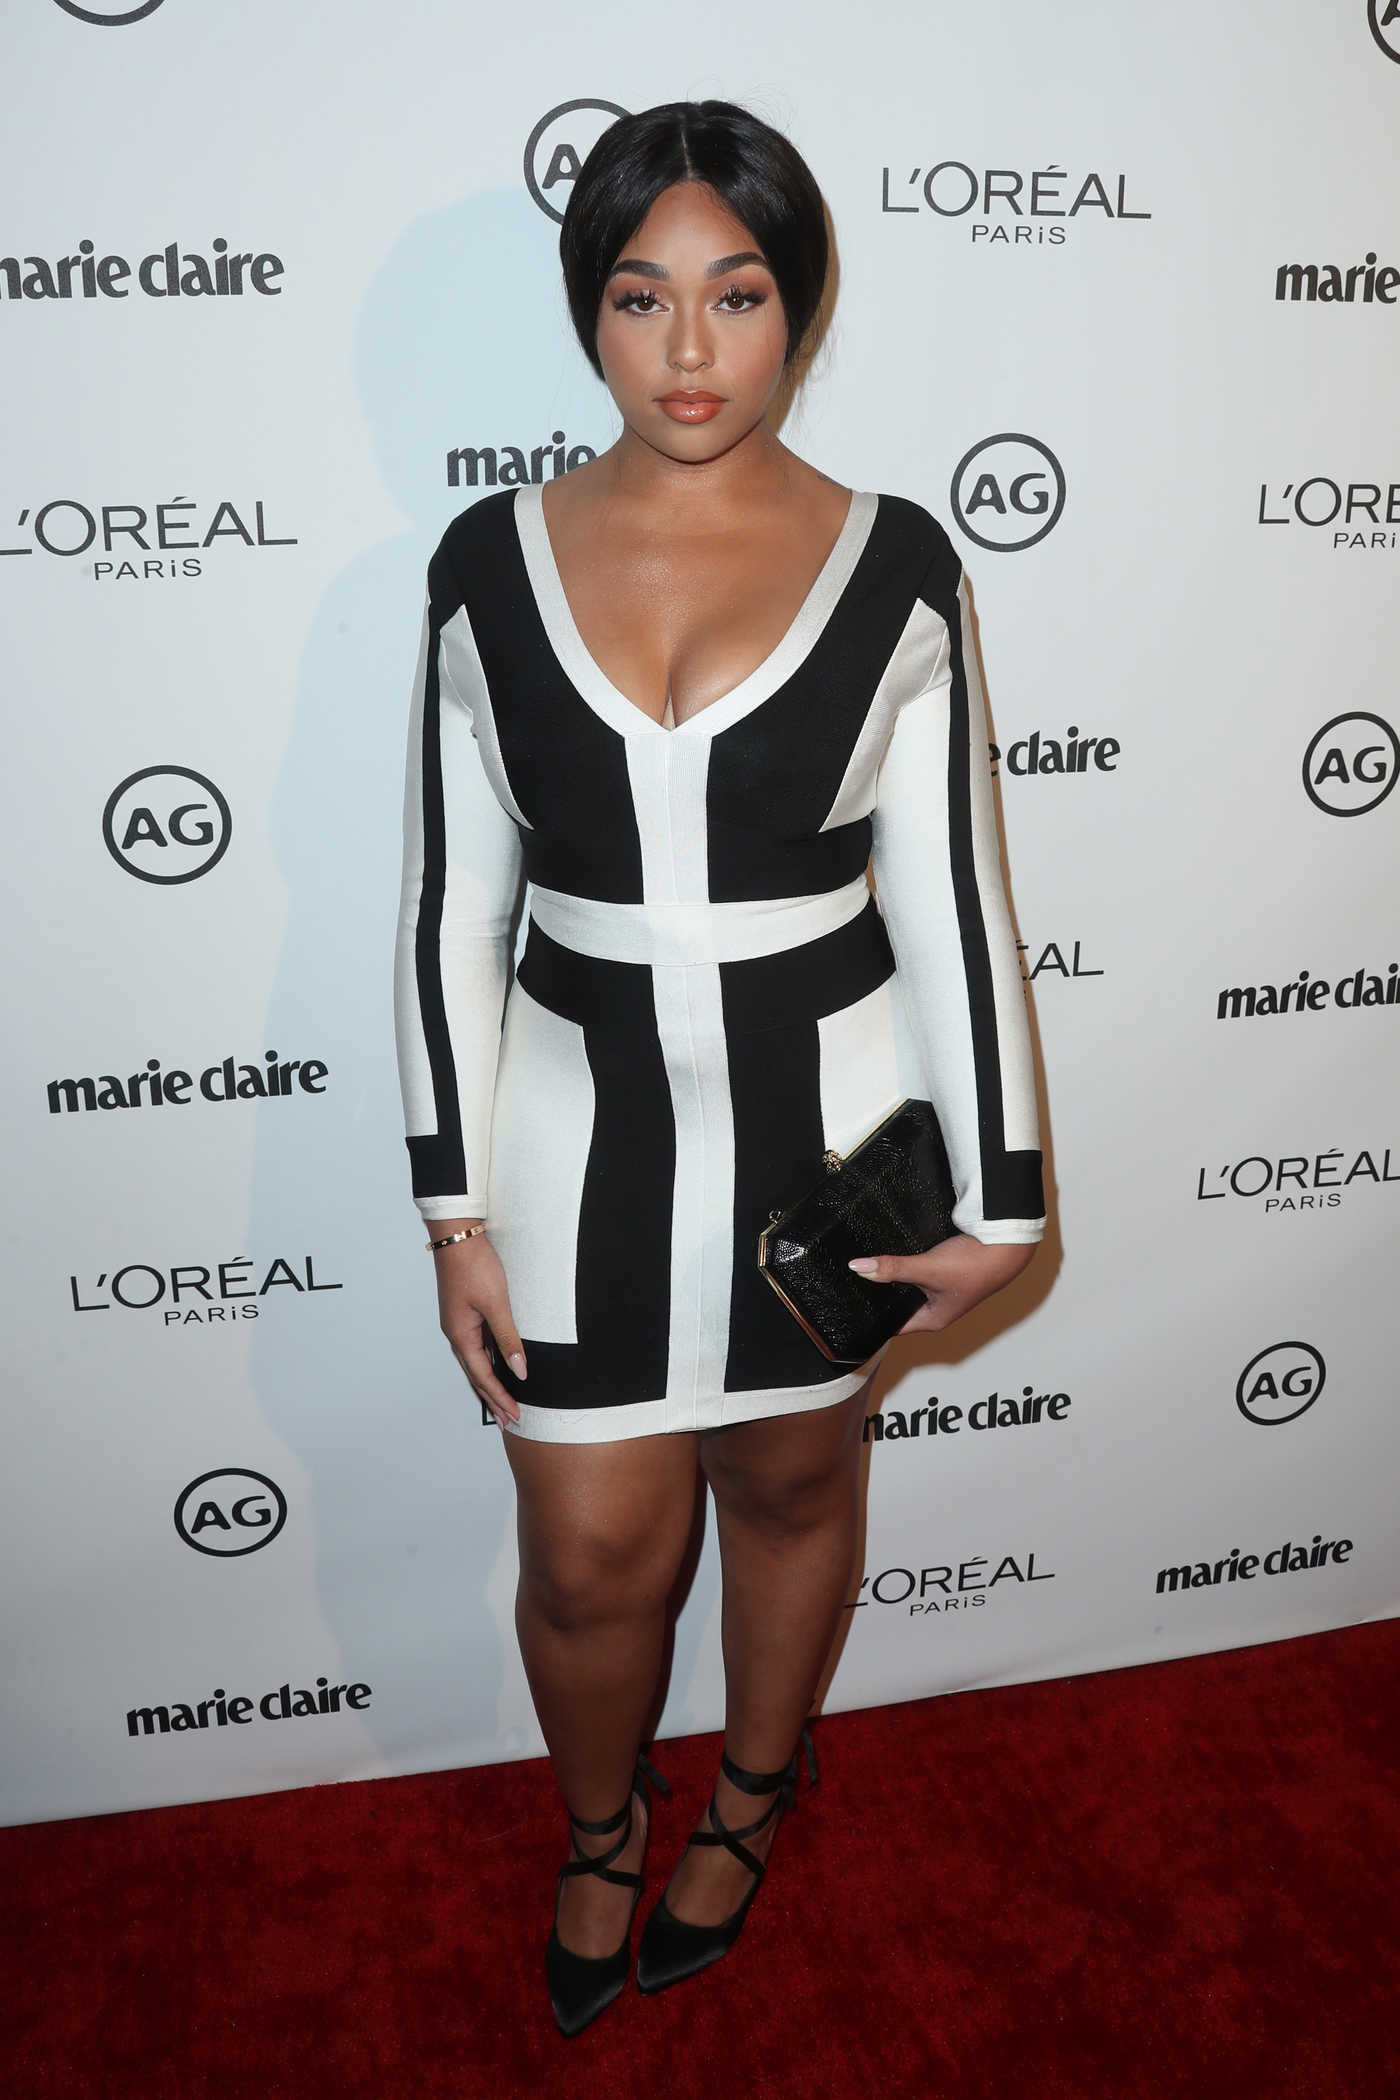 Jordyn Woods at the Marie Claire Image Maker Awards in Los Angeles 10/01/2017